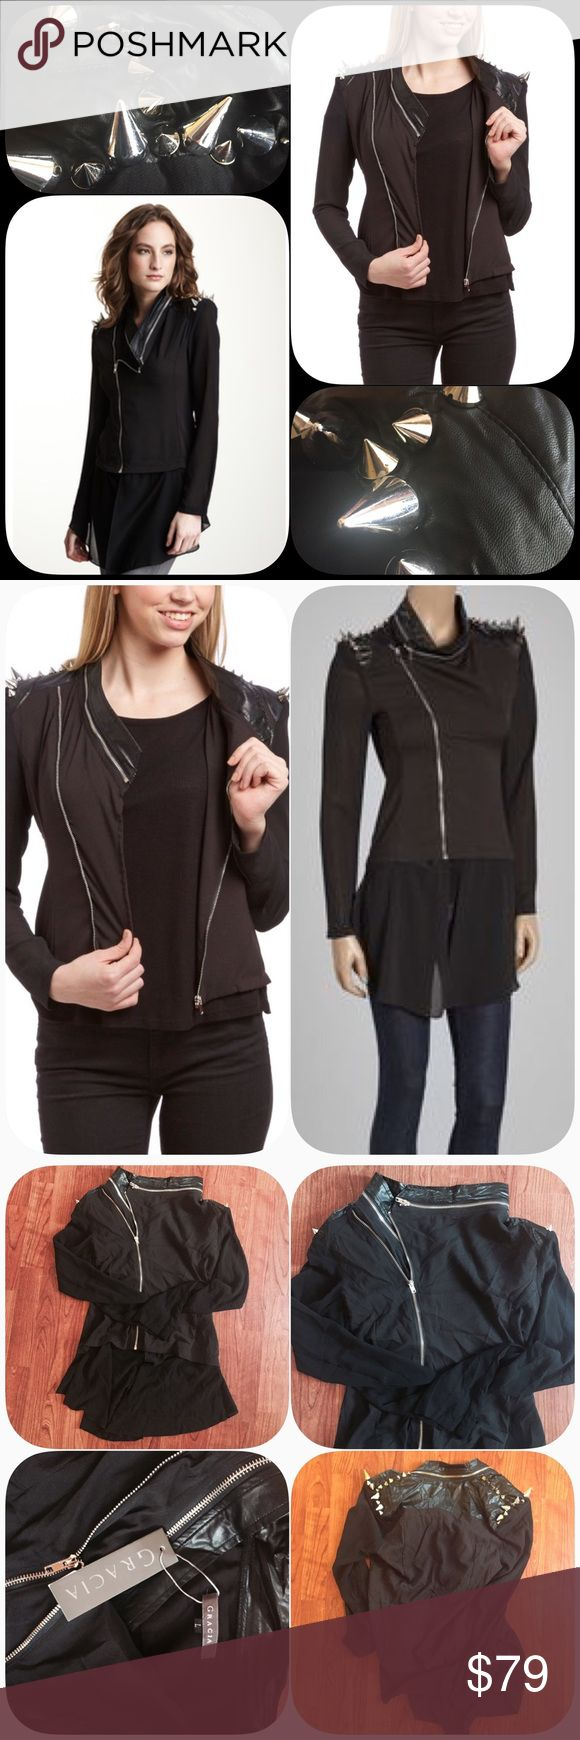 ➕Gracia Leather Chiffon Jacket -detachable Chiffon Spiked shoulder leather jacket! You are purchasing a NWT Gracia Leather Chiffon Jacket with Spiked Shoulders! The chiffon underdrape detaches, which really adds to the unique quality of this sold out piece! You can wear it up, down, edgy, or moto! Shell: 97% polyester, 3% spandex; Patch A: PU and Rayon; Patch C: Polyester 100%; Inside: 100% Polyester. Gracia Jackets & Coats